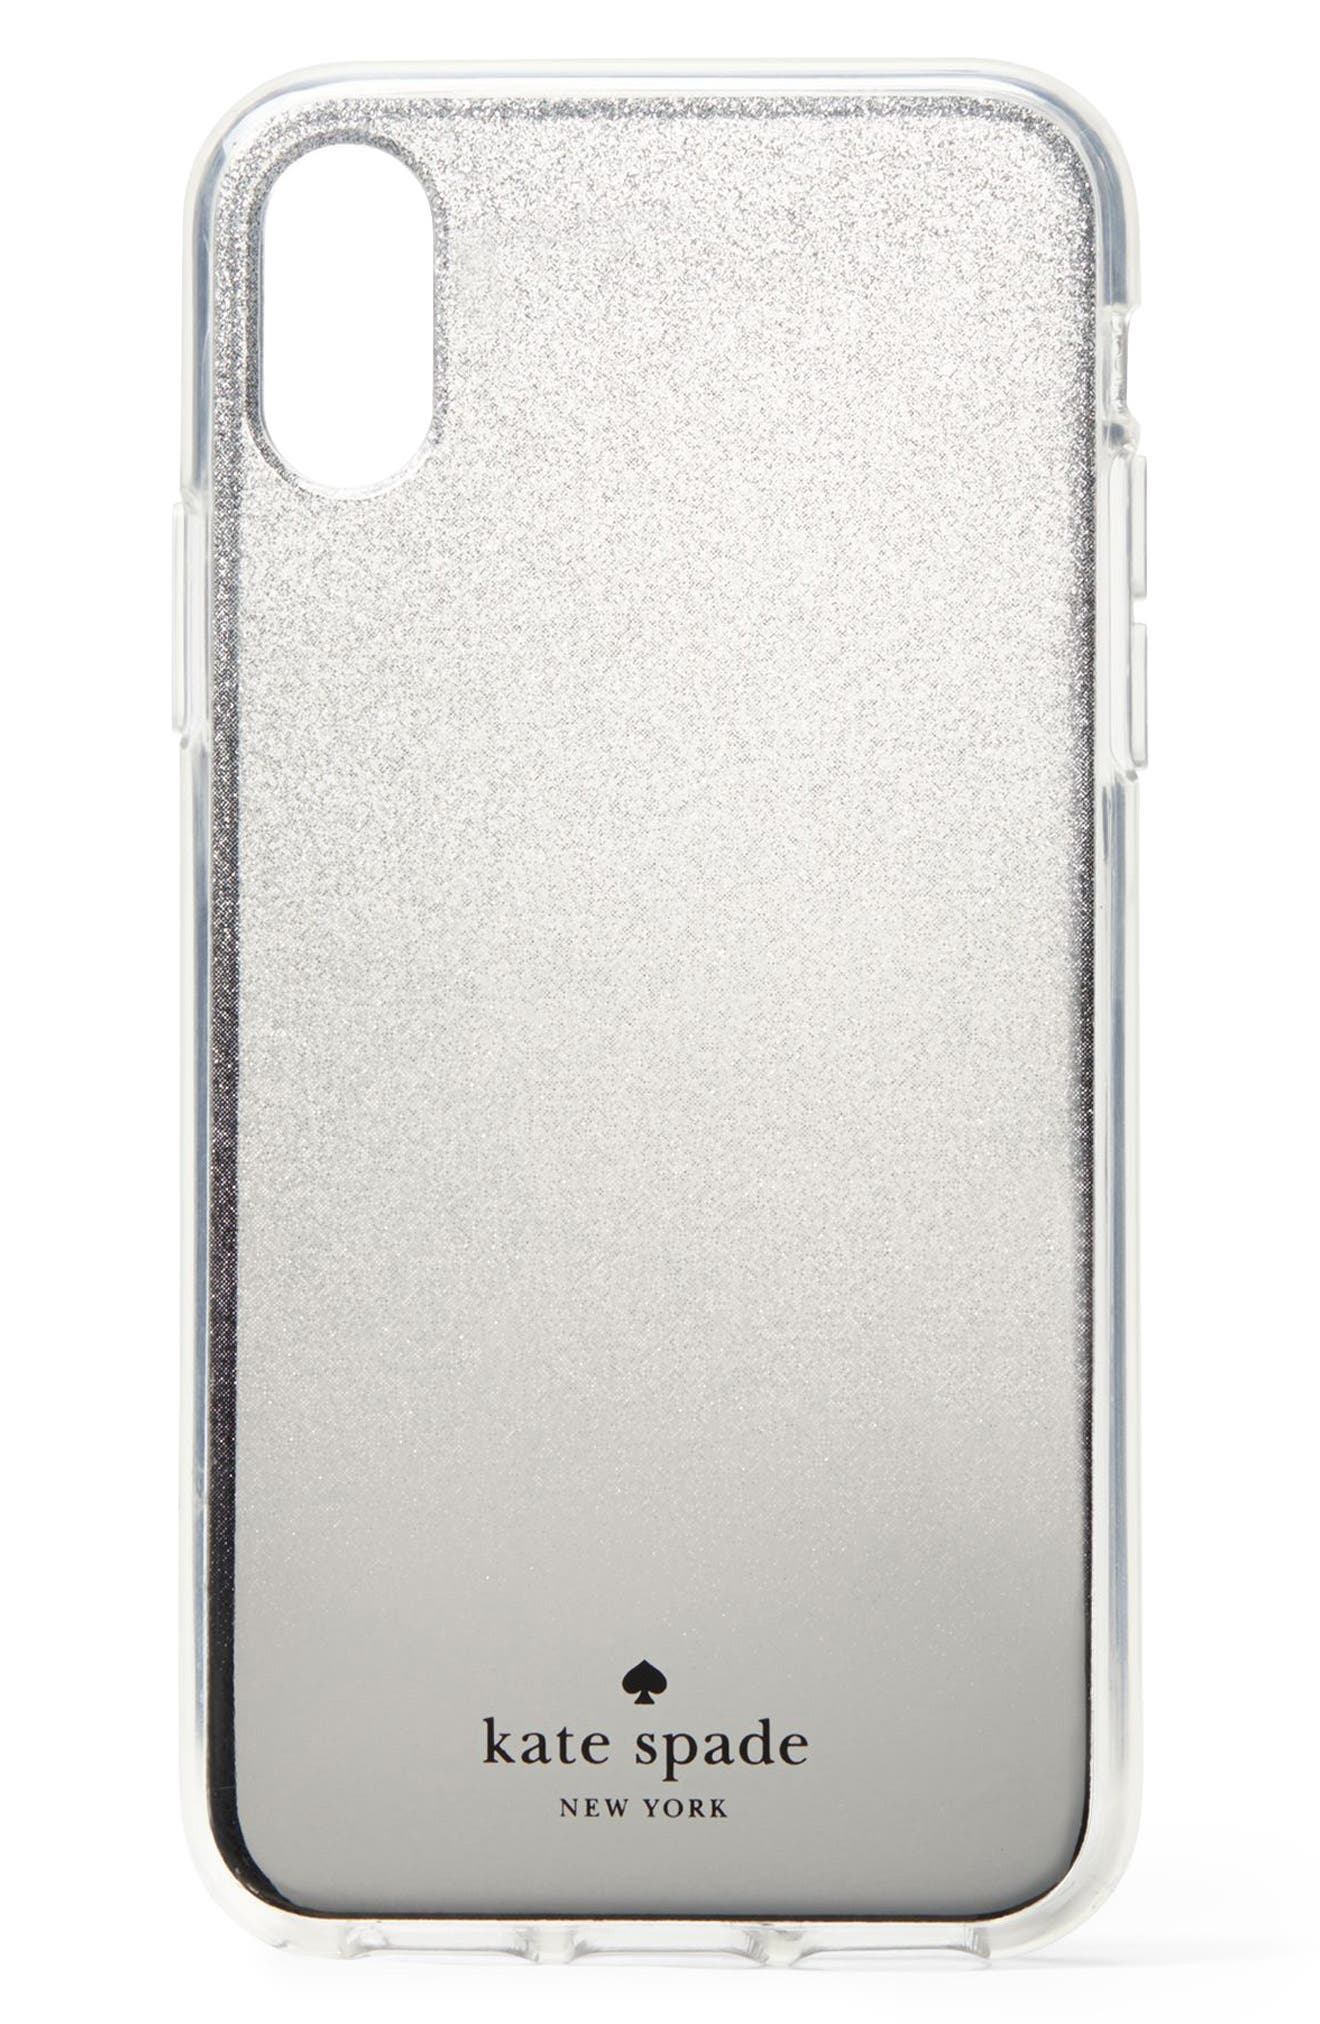 KATE SPADE NEW YORK glitter ombré iPhone X/Xs/Xs Max & XR case, Main, color, 040